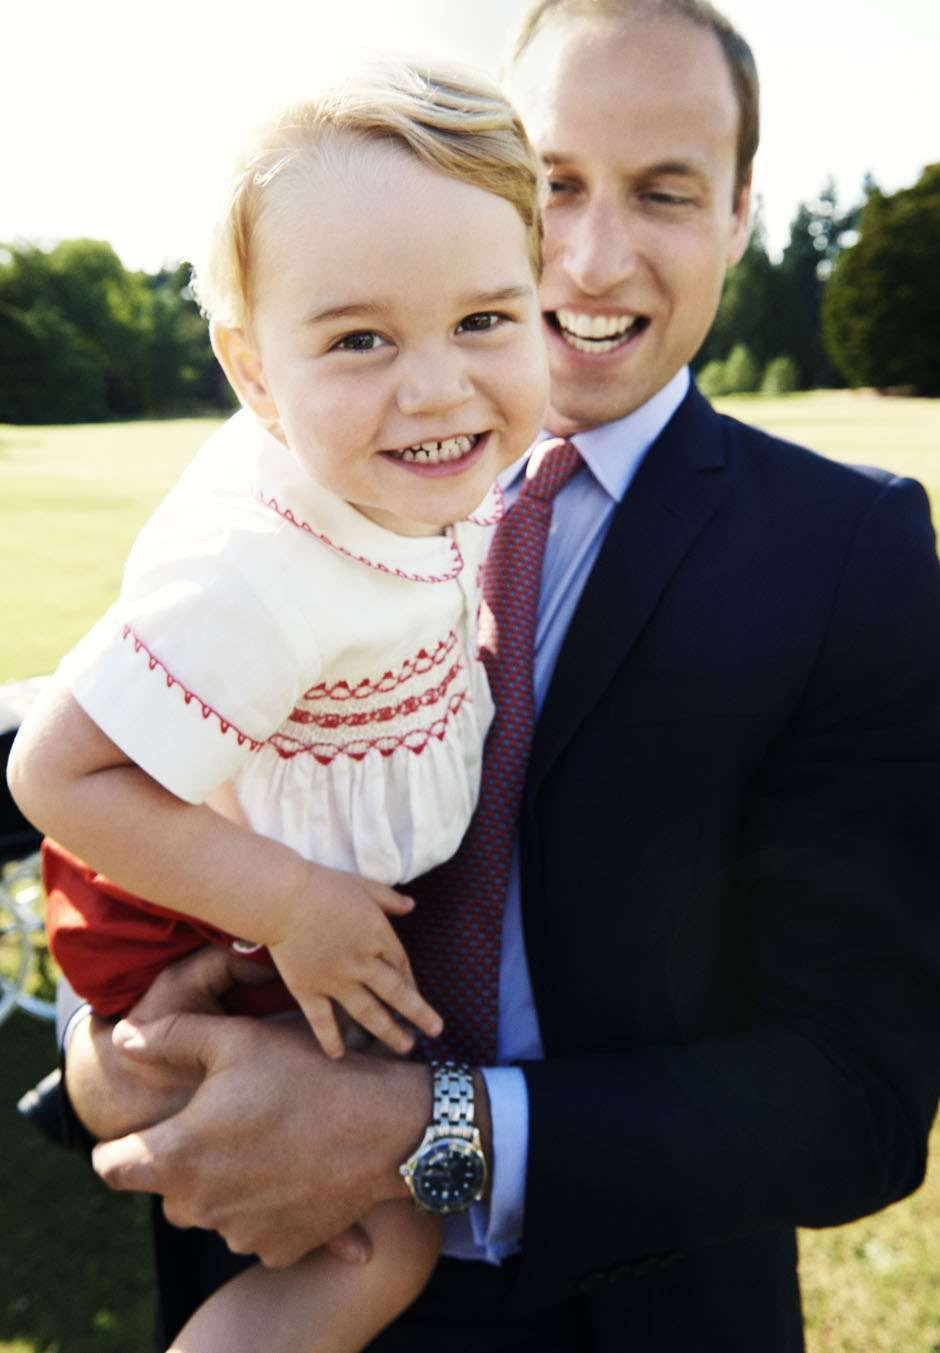 Prince William holding a smiling Prince George